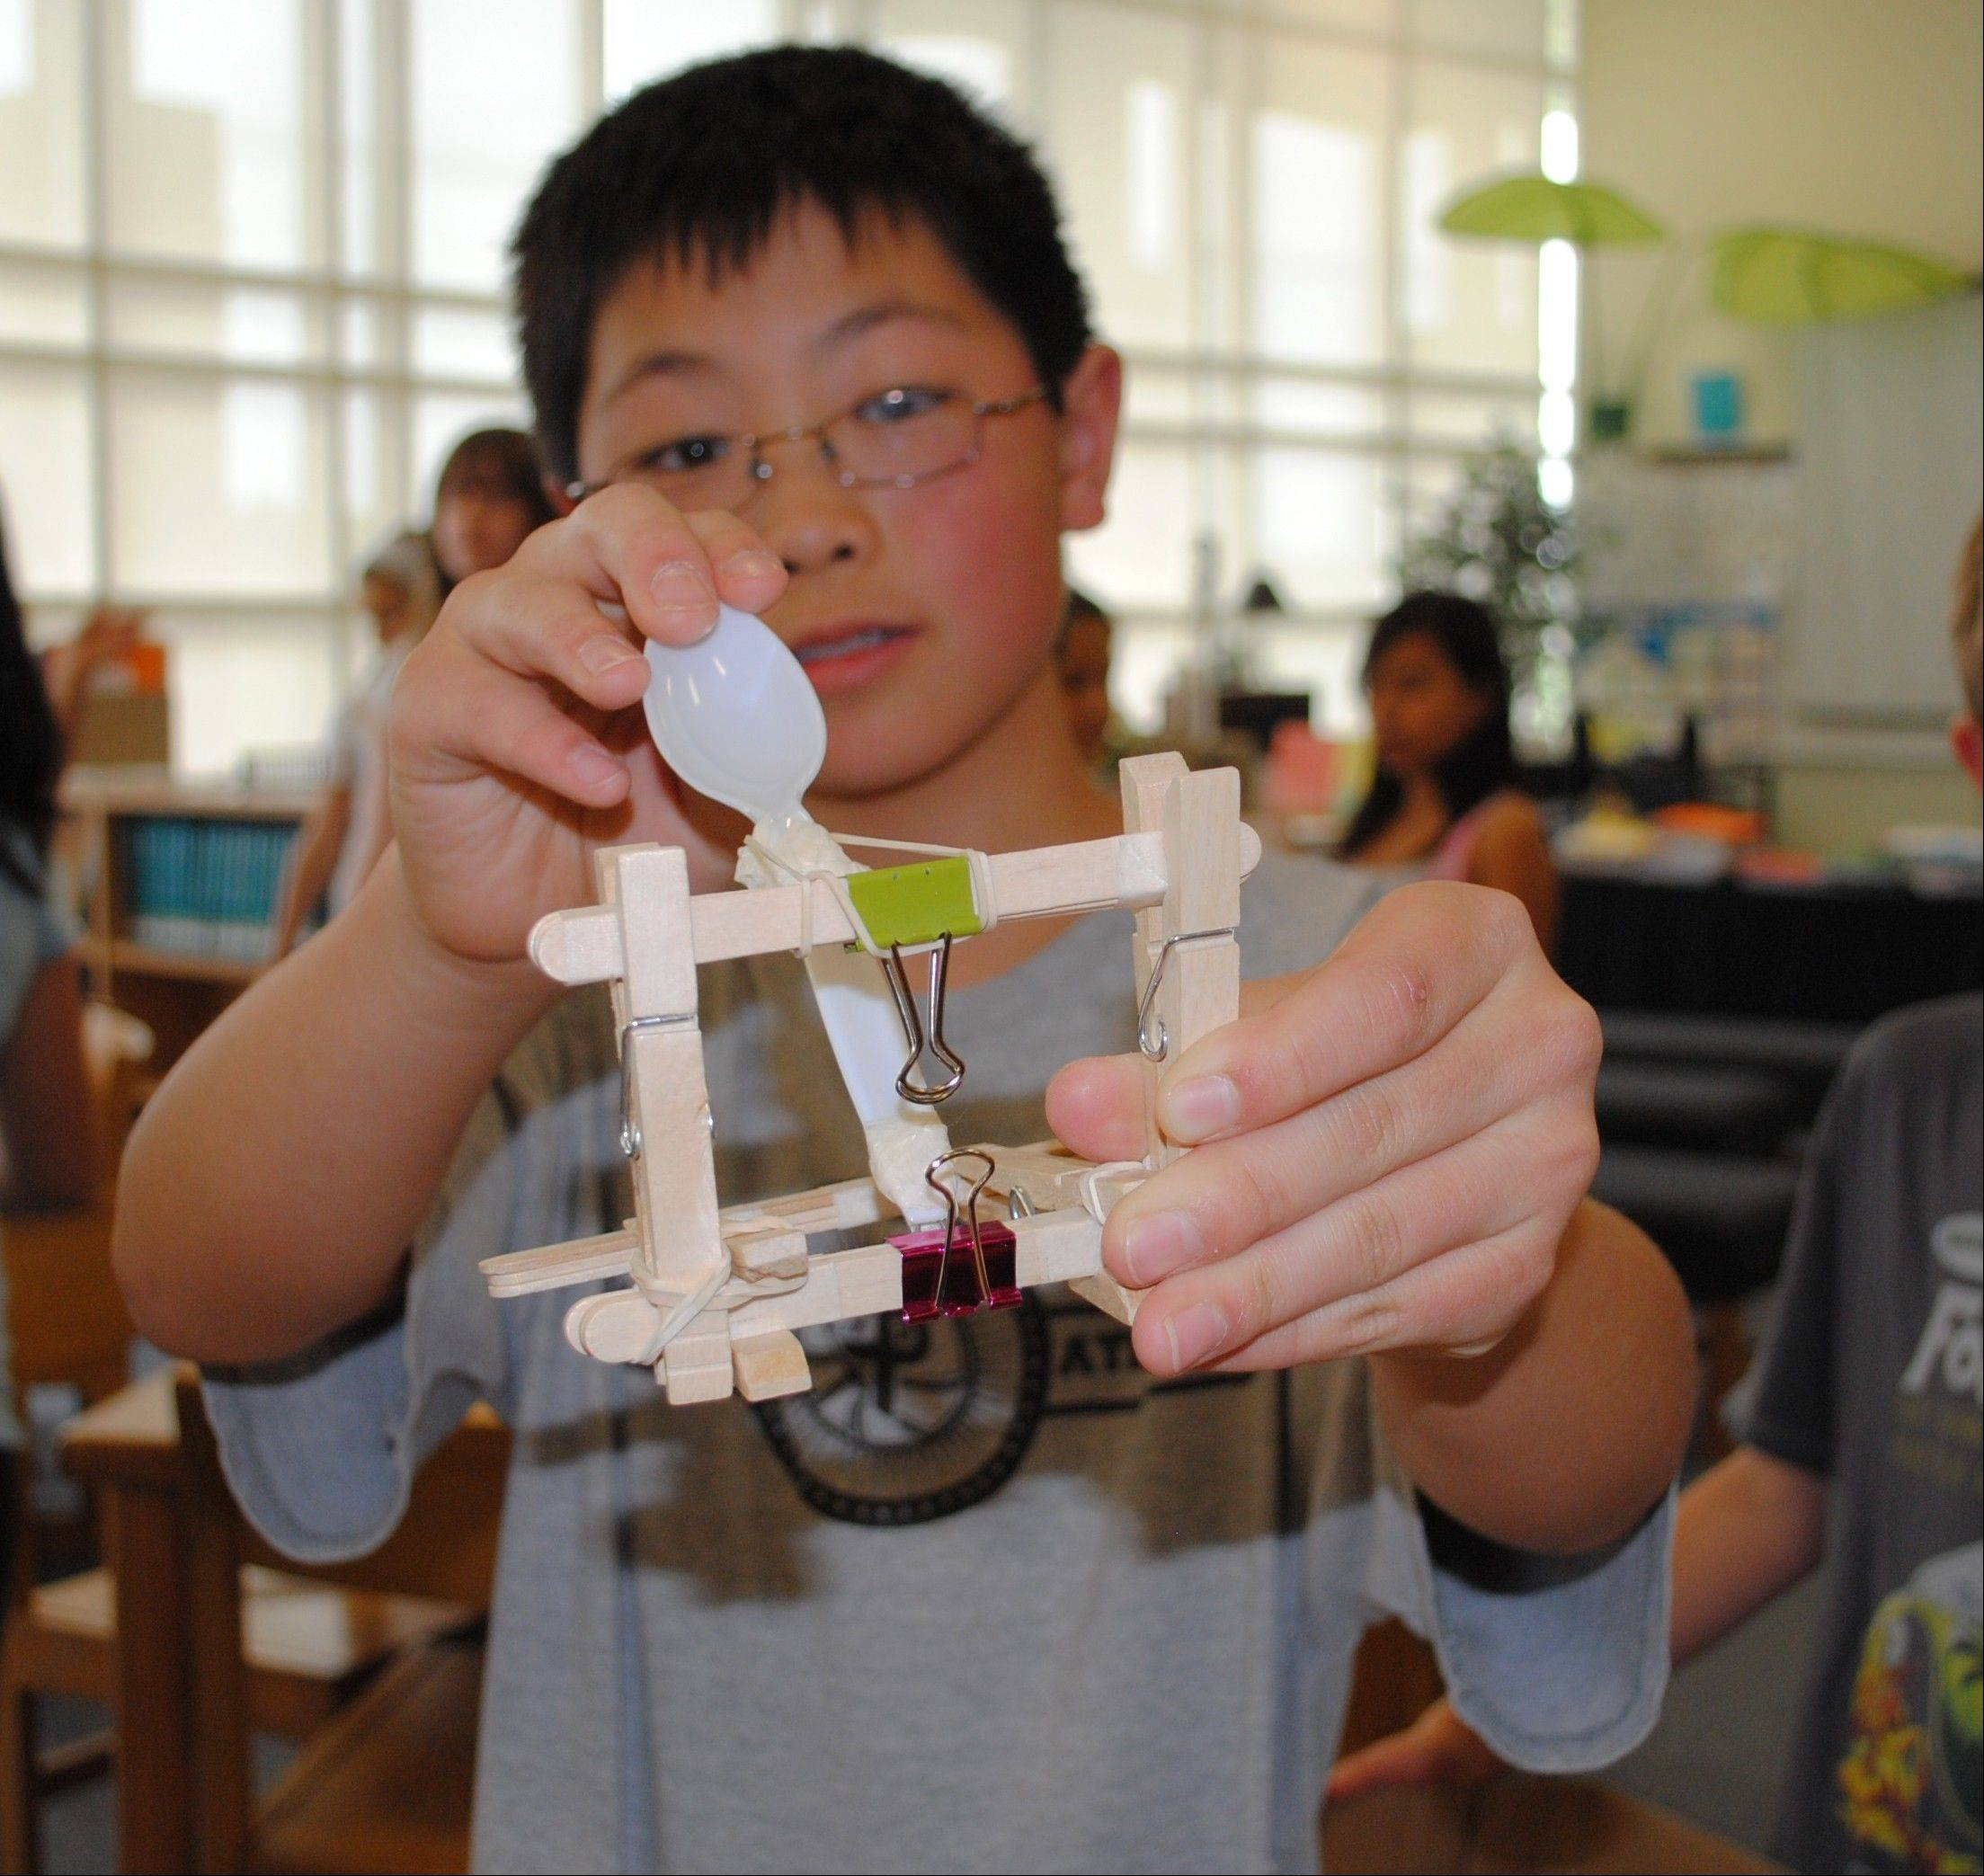 District 96 Country Meadows fifth-grader Daniel Hwang demonstrates the catapult he made to trade at the Country Meadows Trade Fair.